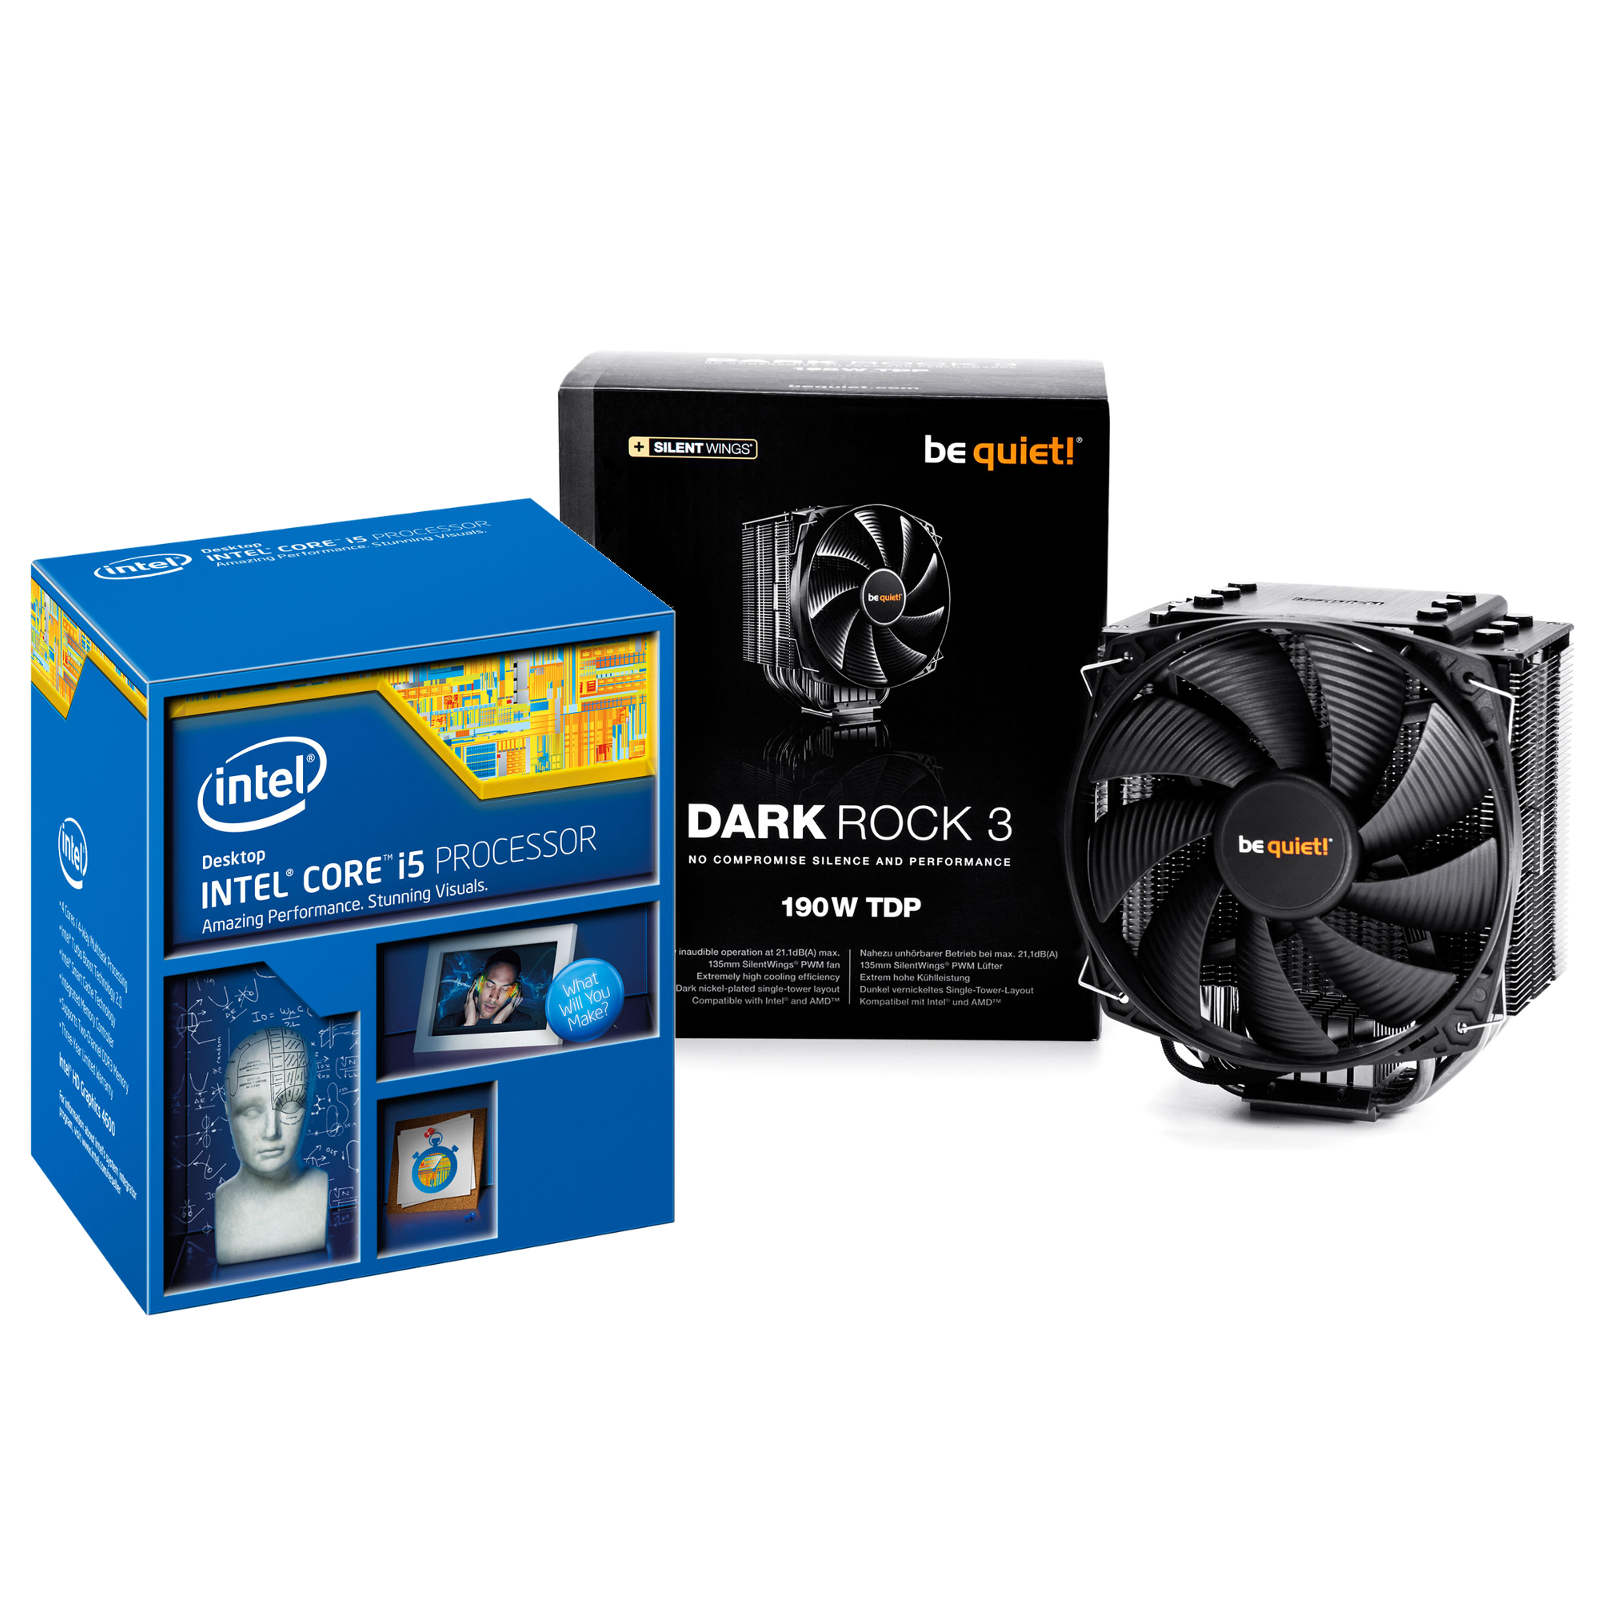 Processeur Intel Core i5-4690K (3.5 GHz) + Be Quiet ! Dark Rock 3 Processeur Quad Core Socket 1150 Cache L3 6 Mo Intel HD Graphics 4600 0.022 micron (version boîte - garantie Intel 3 ans) + Ventilateur de processeur